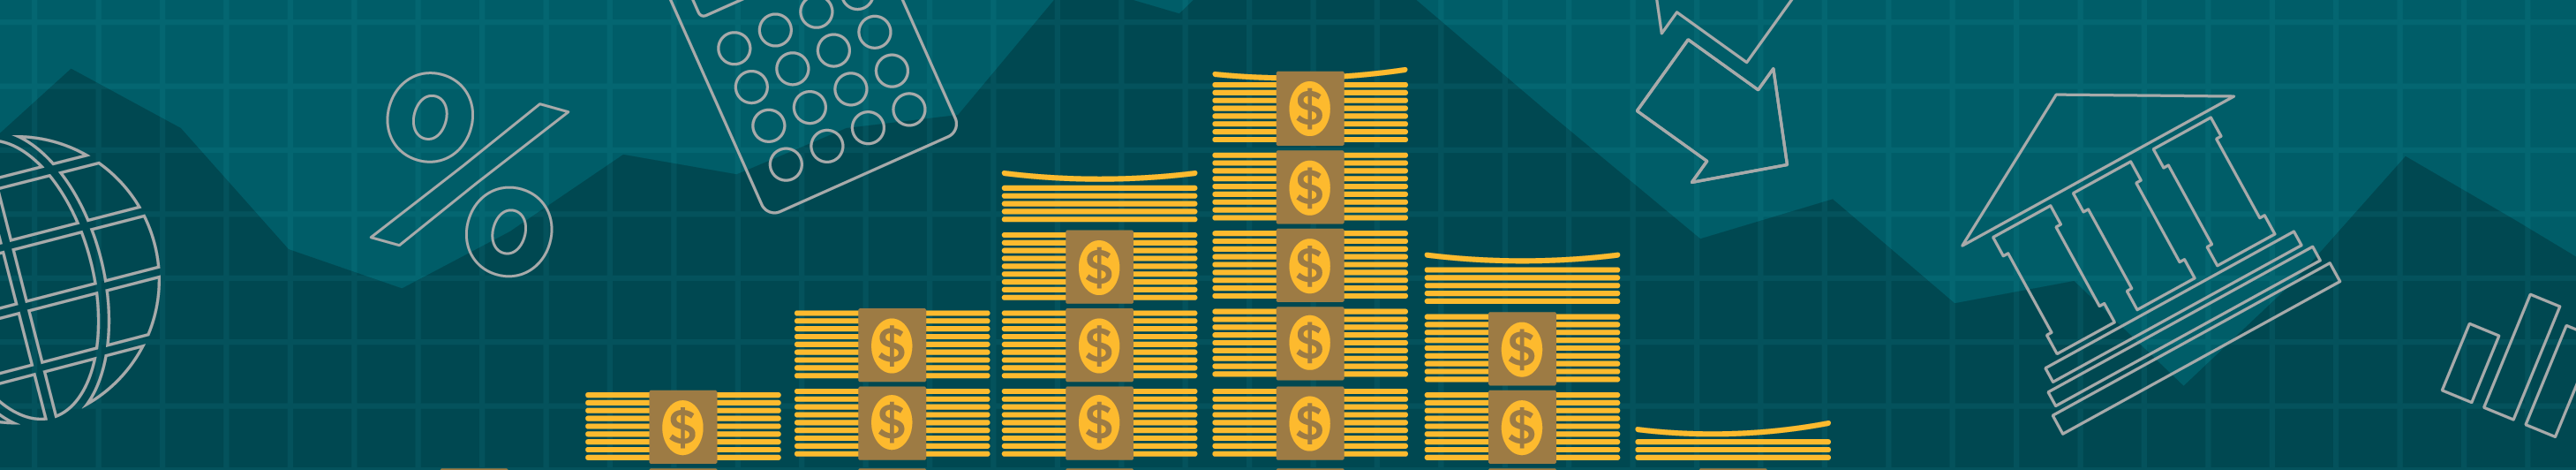 illustration of money and chart